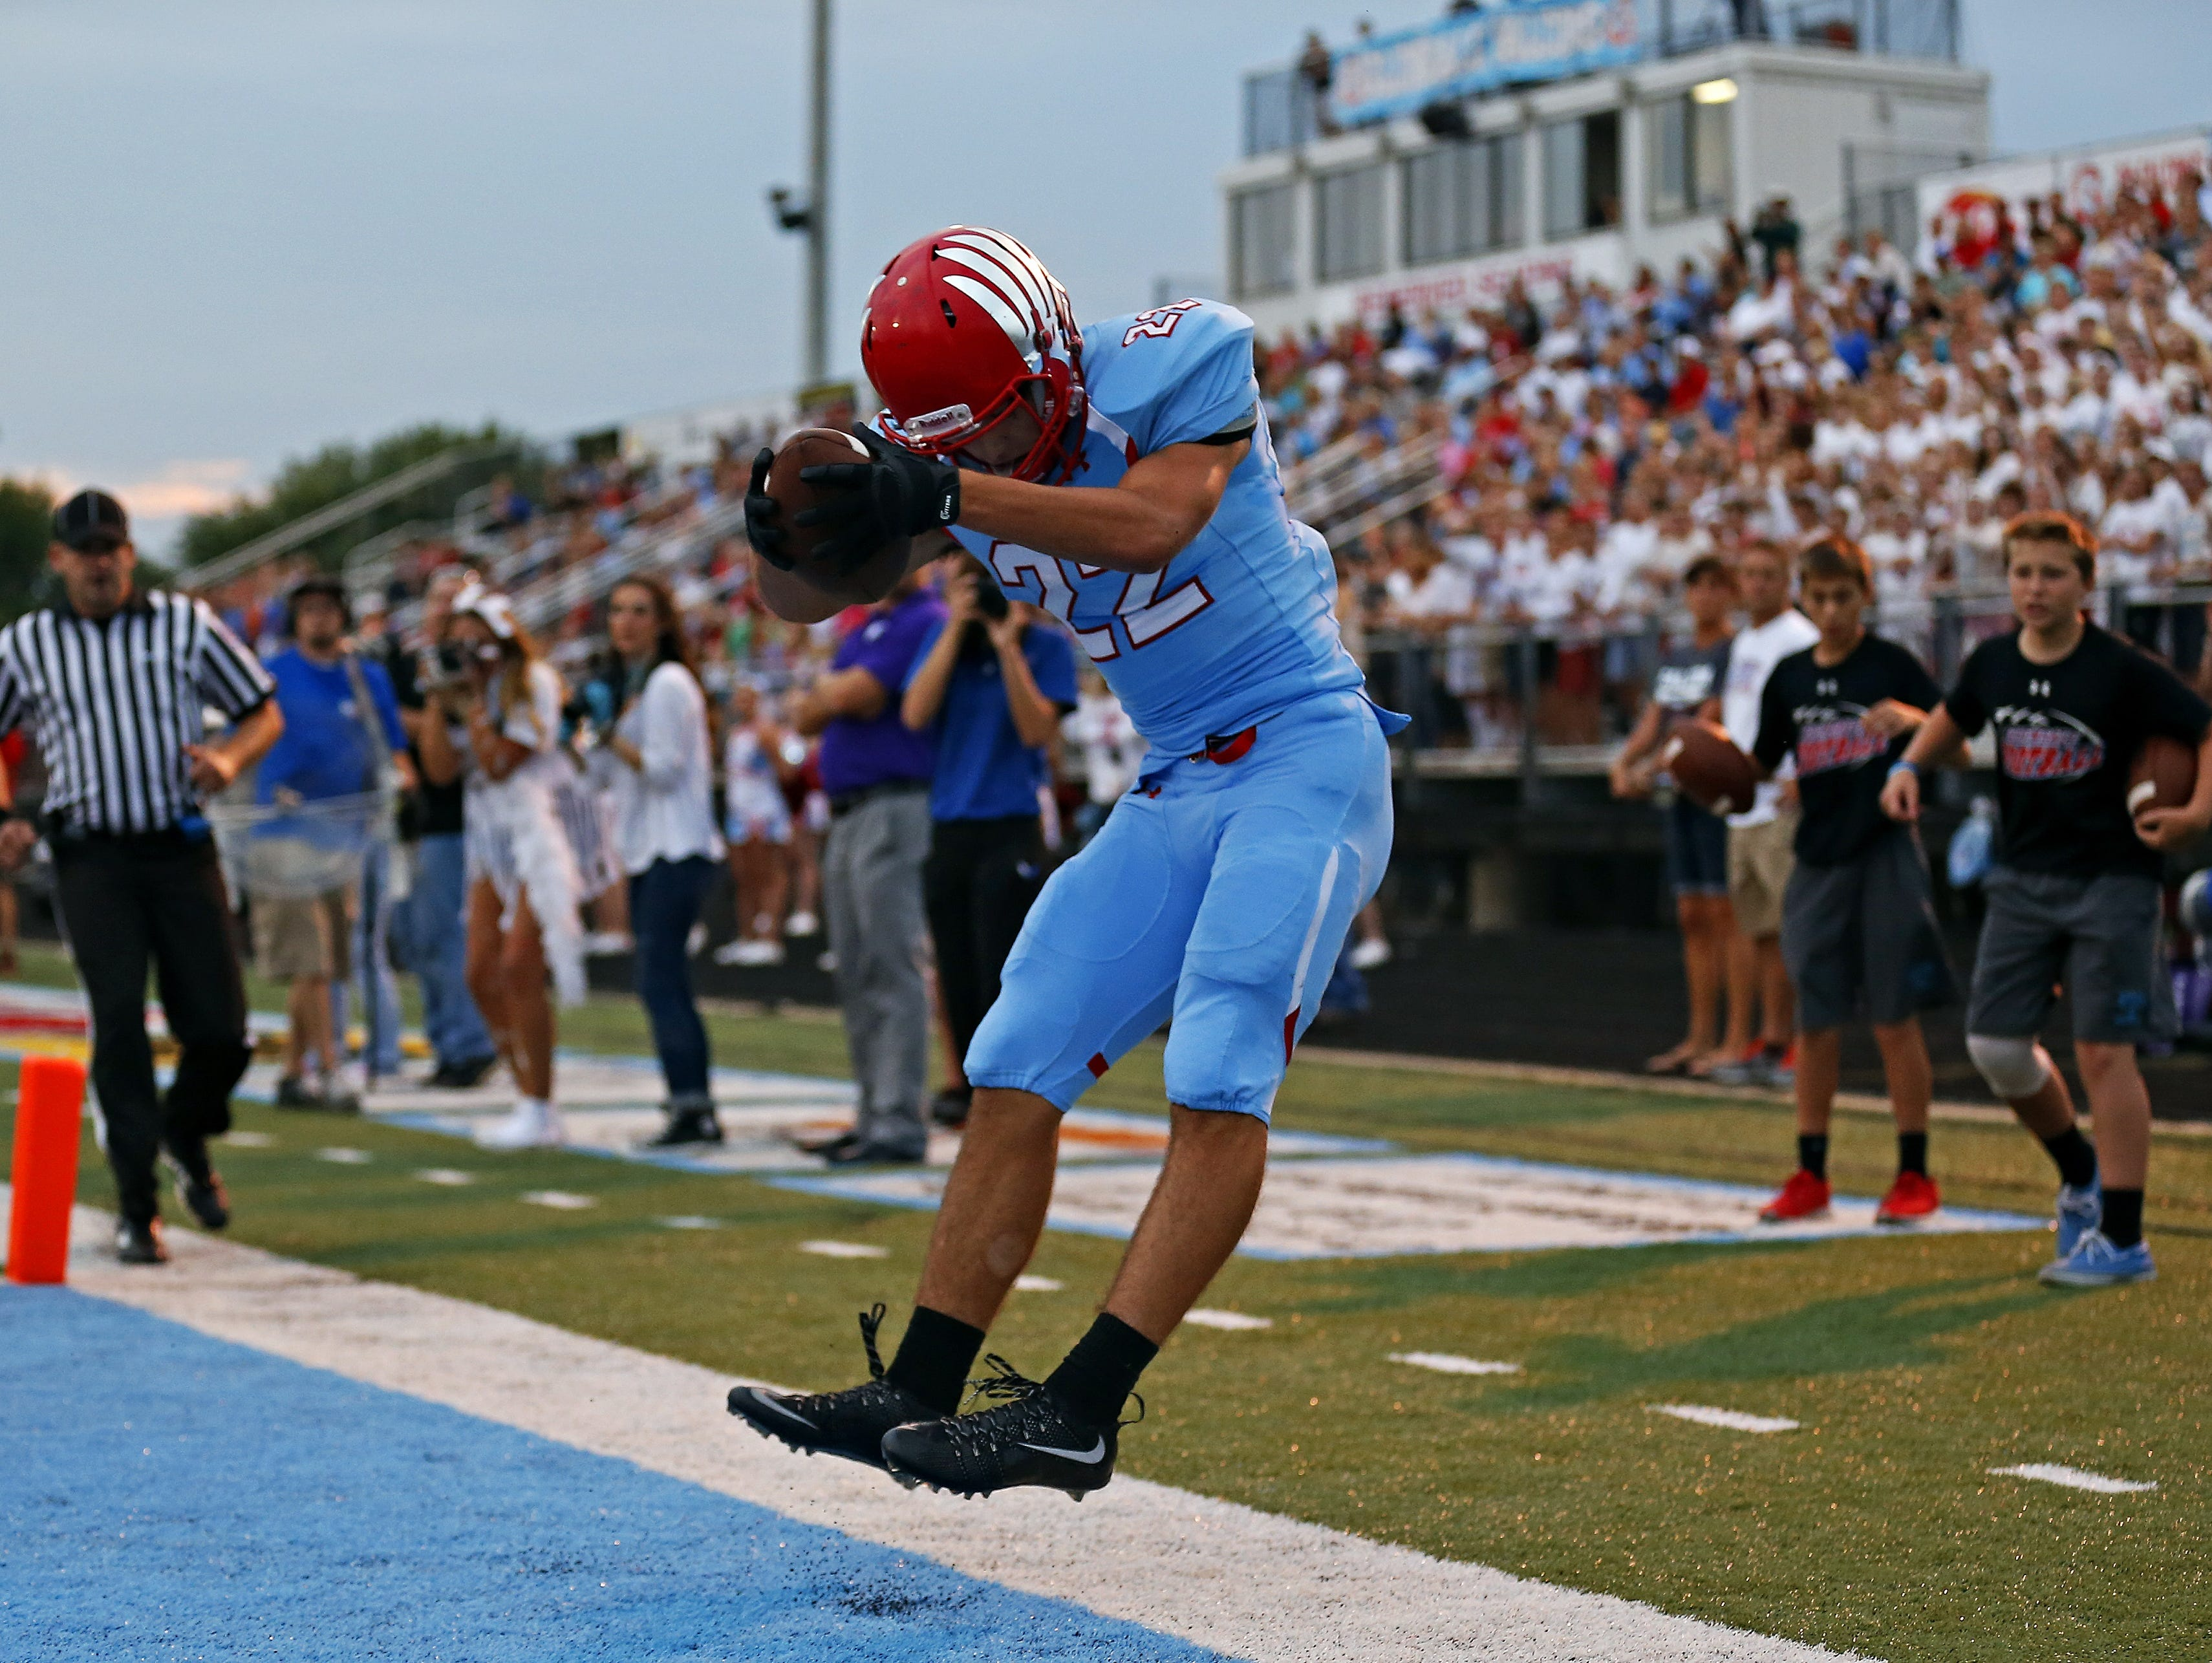 Glendale wide receiver Luke Montgomery caught 123 passes for 1,936 yards and 27 touchdowns in 11 games in 2015.